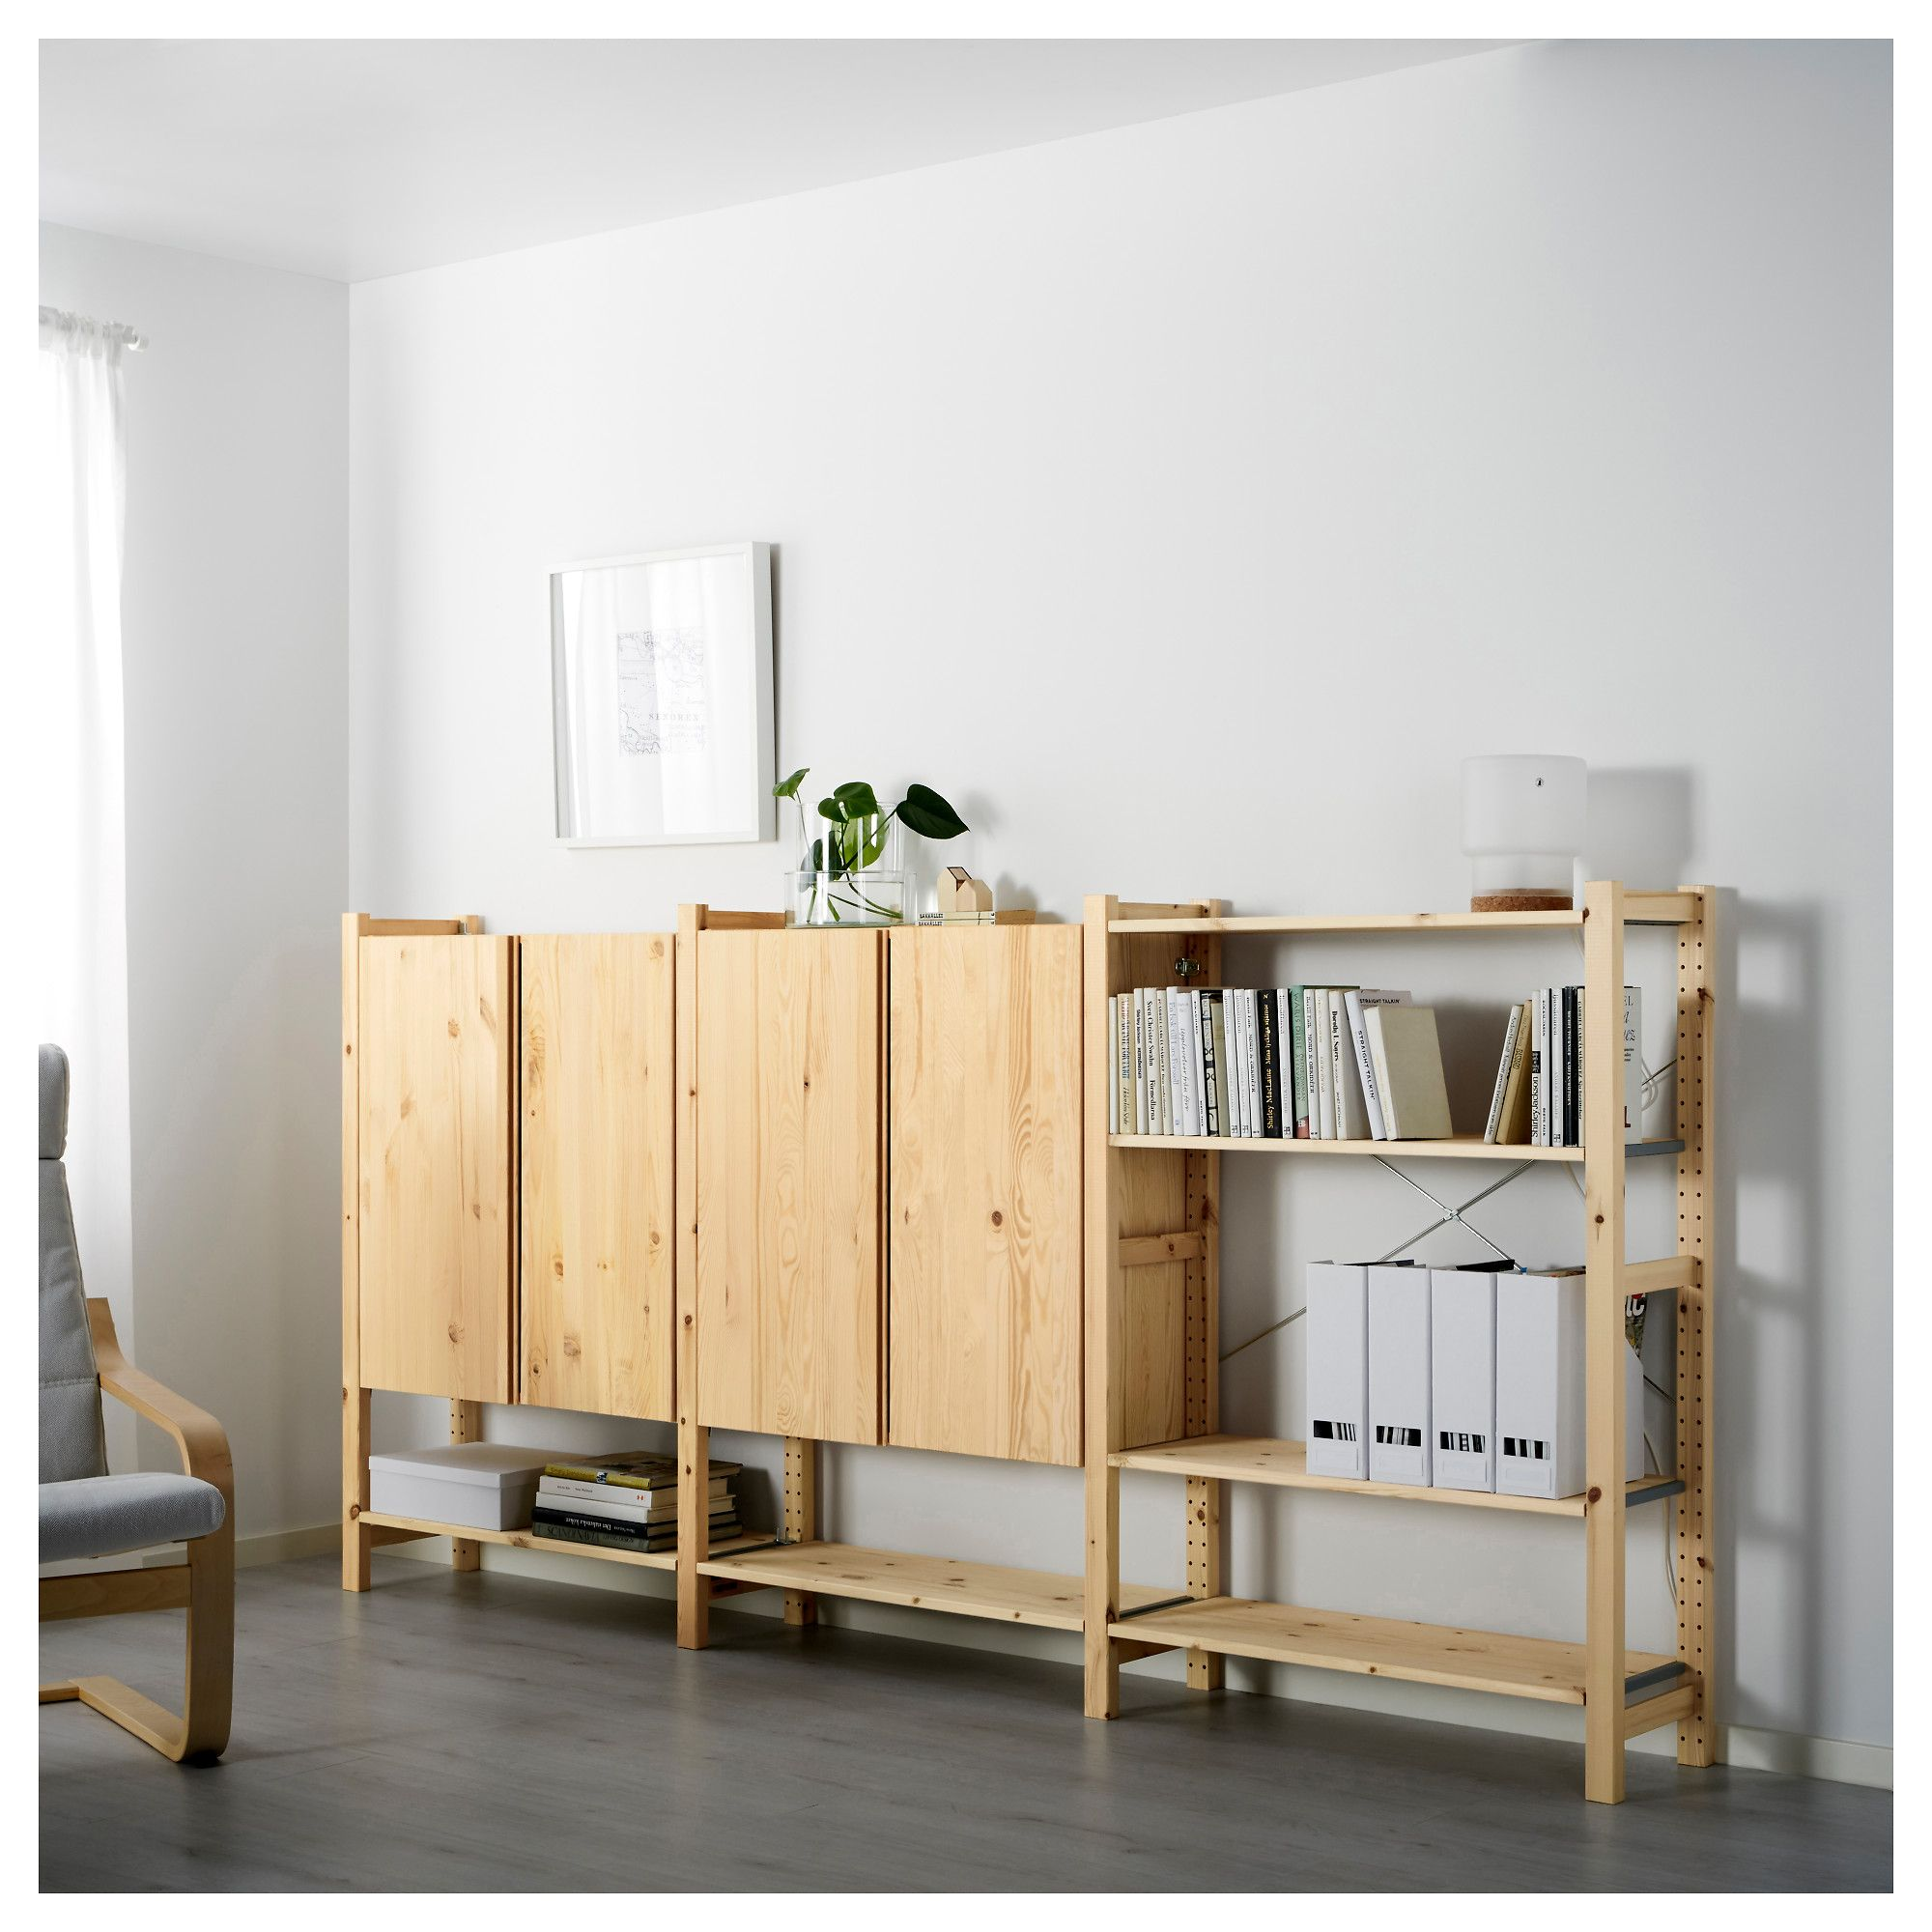 IKEA - IVAR, Side unit, 30x124 cm, , Untreated solid pine is a durable natural material that can be painted, oiled or stained according to preference.